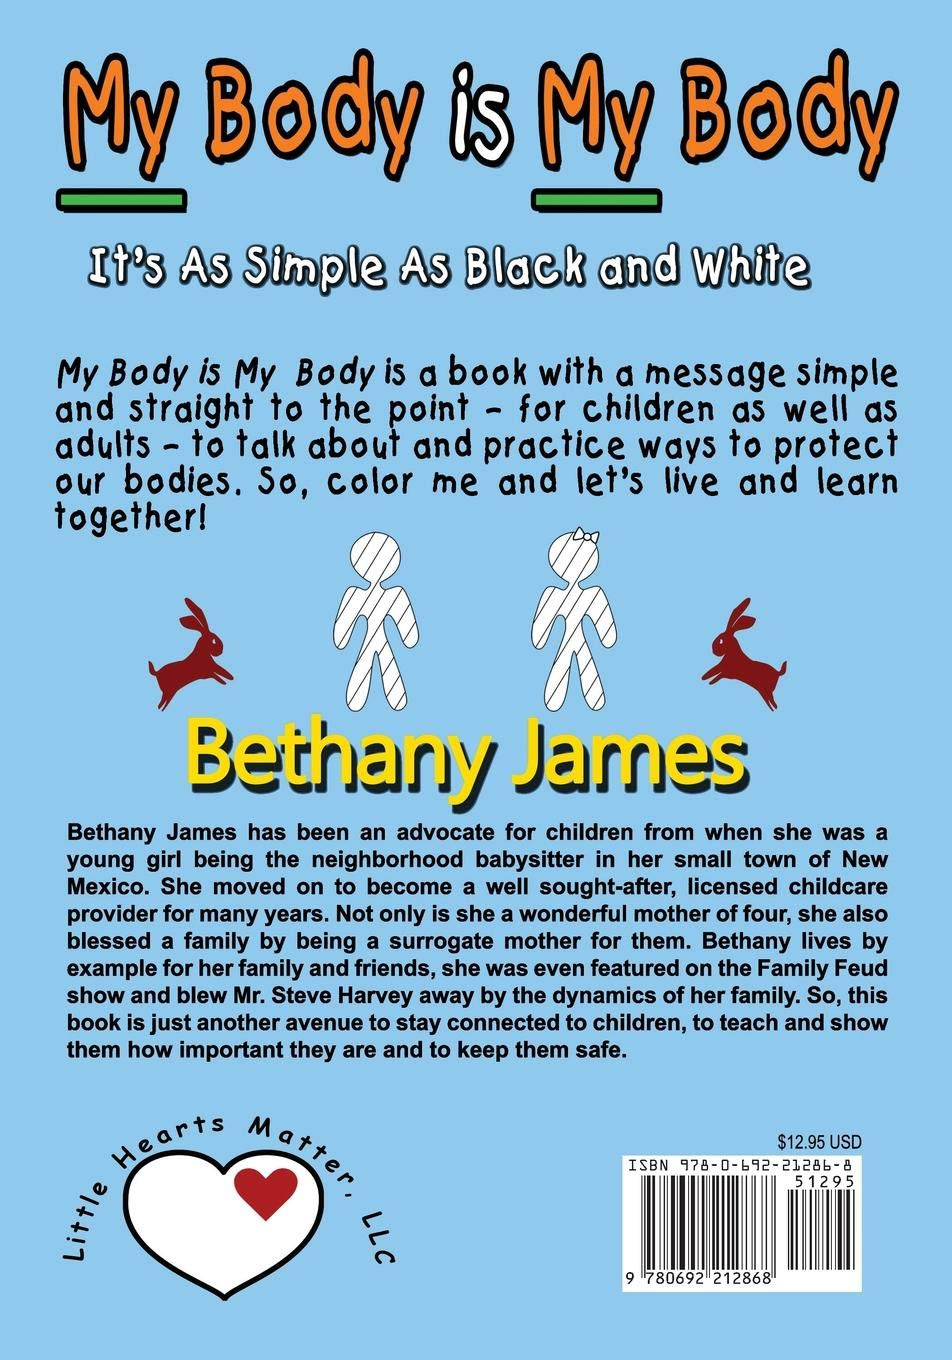 My body is my body its as simple as black and white bethany james 9780692212868 amazon com books